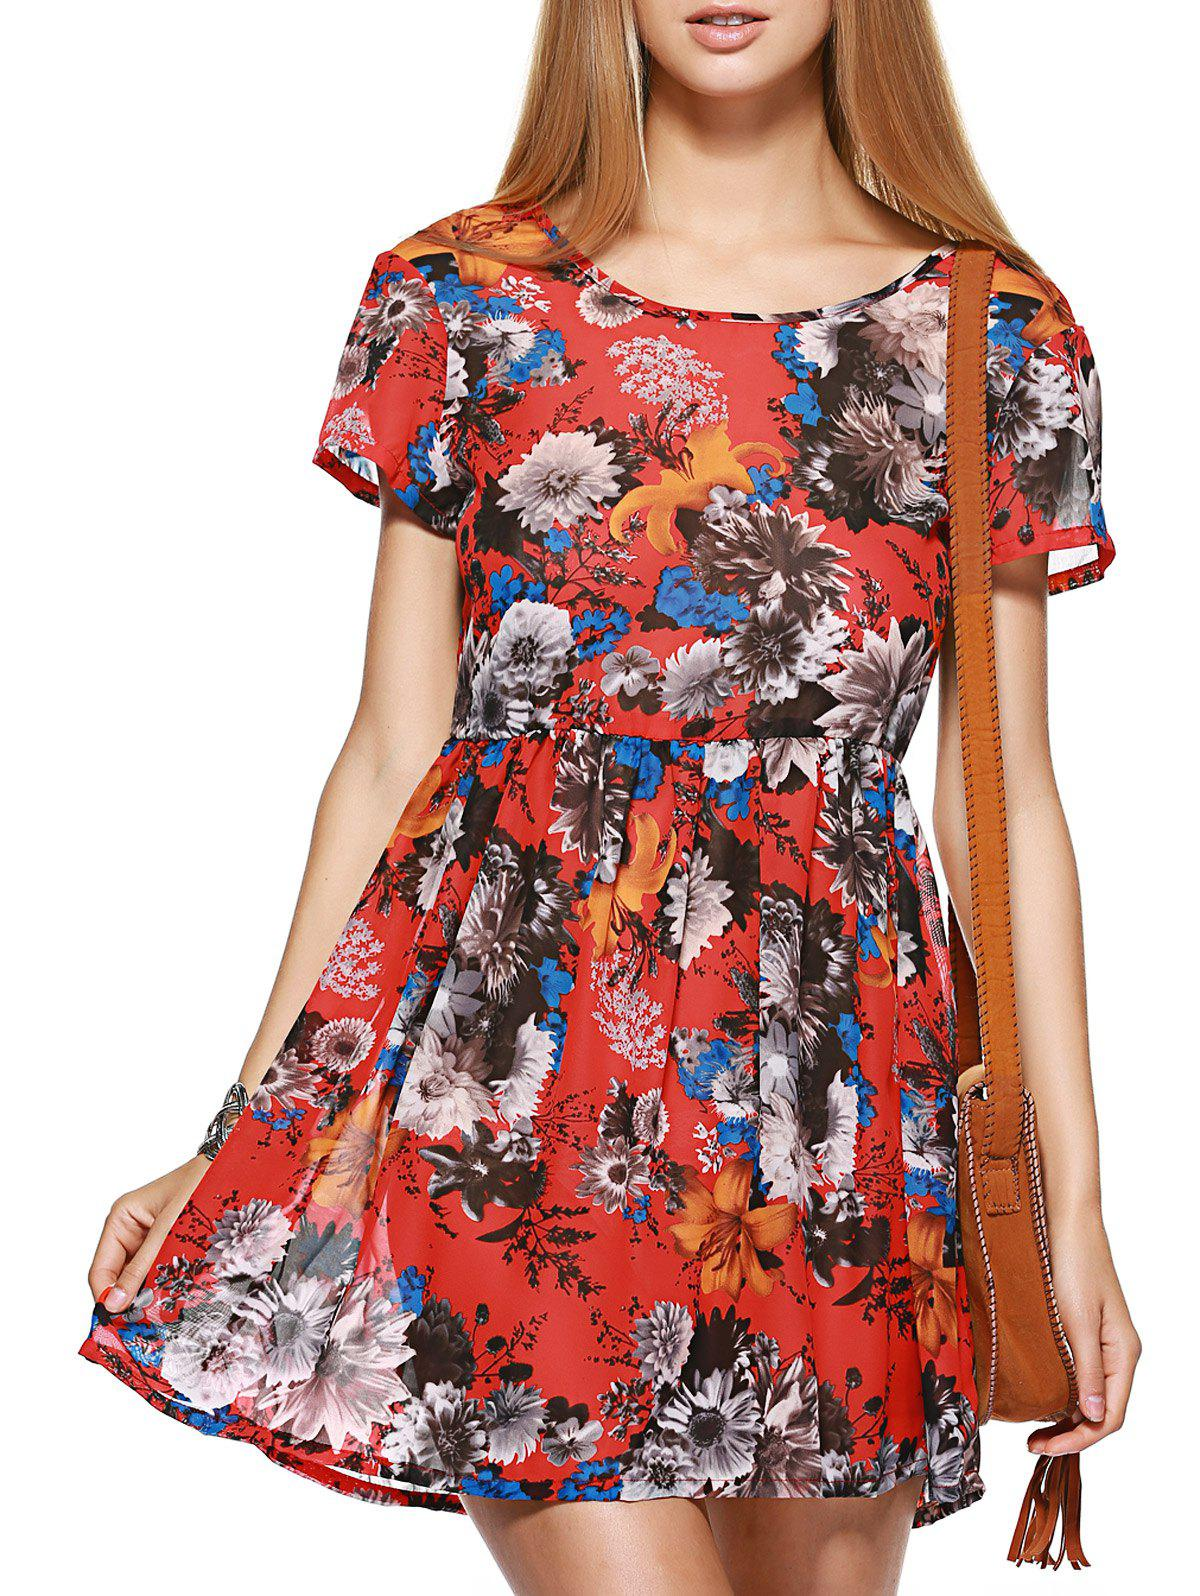 Fashionable Short Sleeve Lace-Up Floral Print Women's Dress - RED L